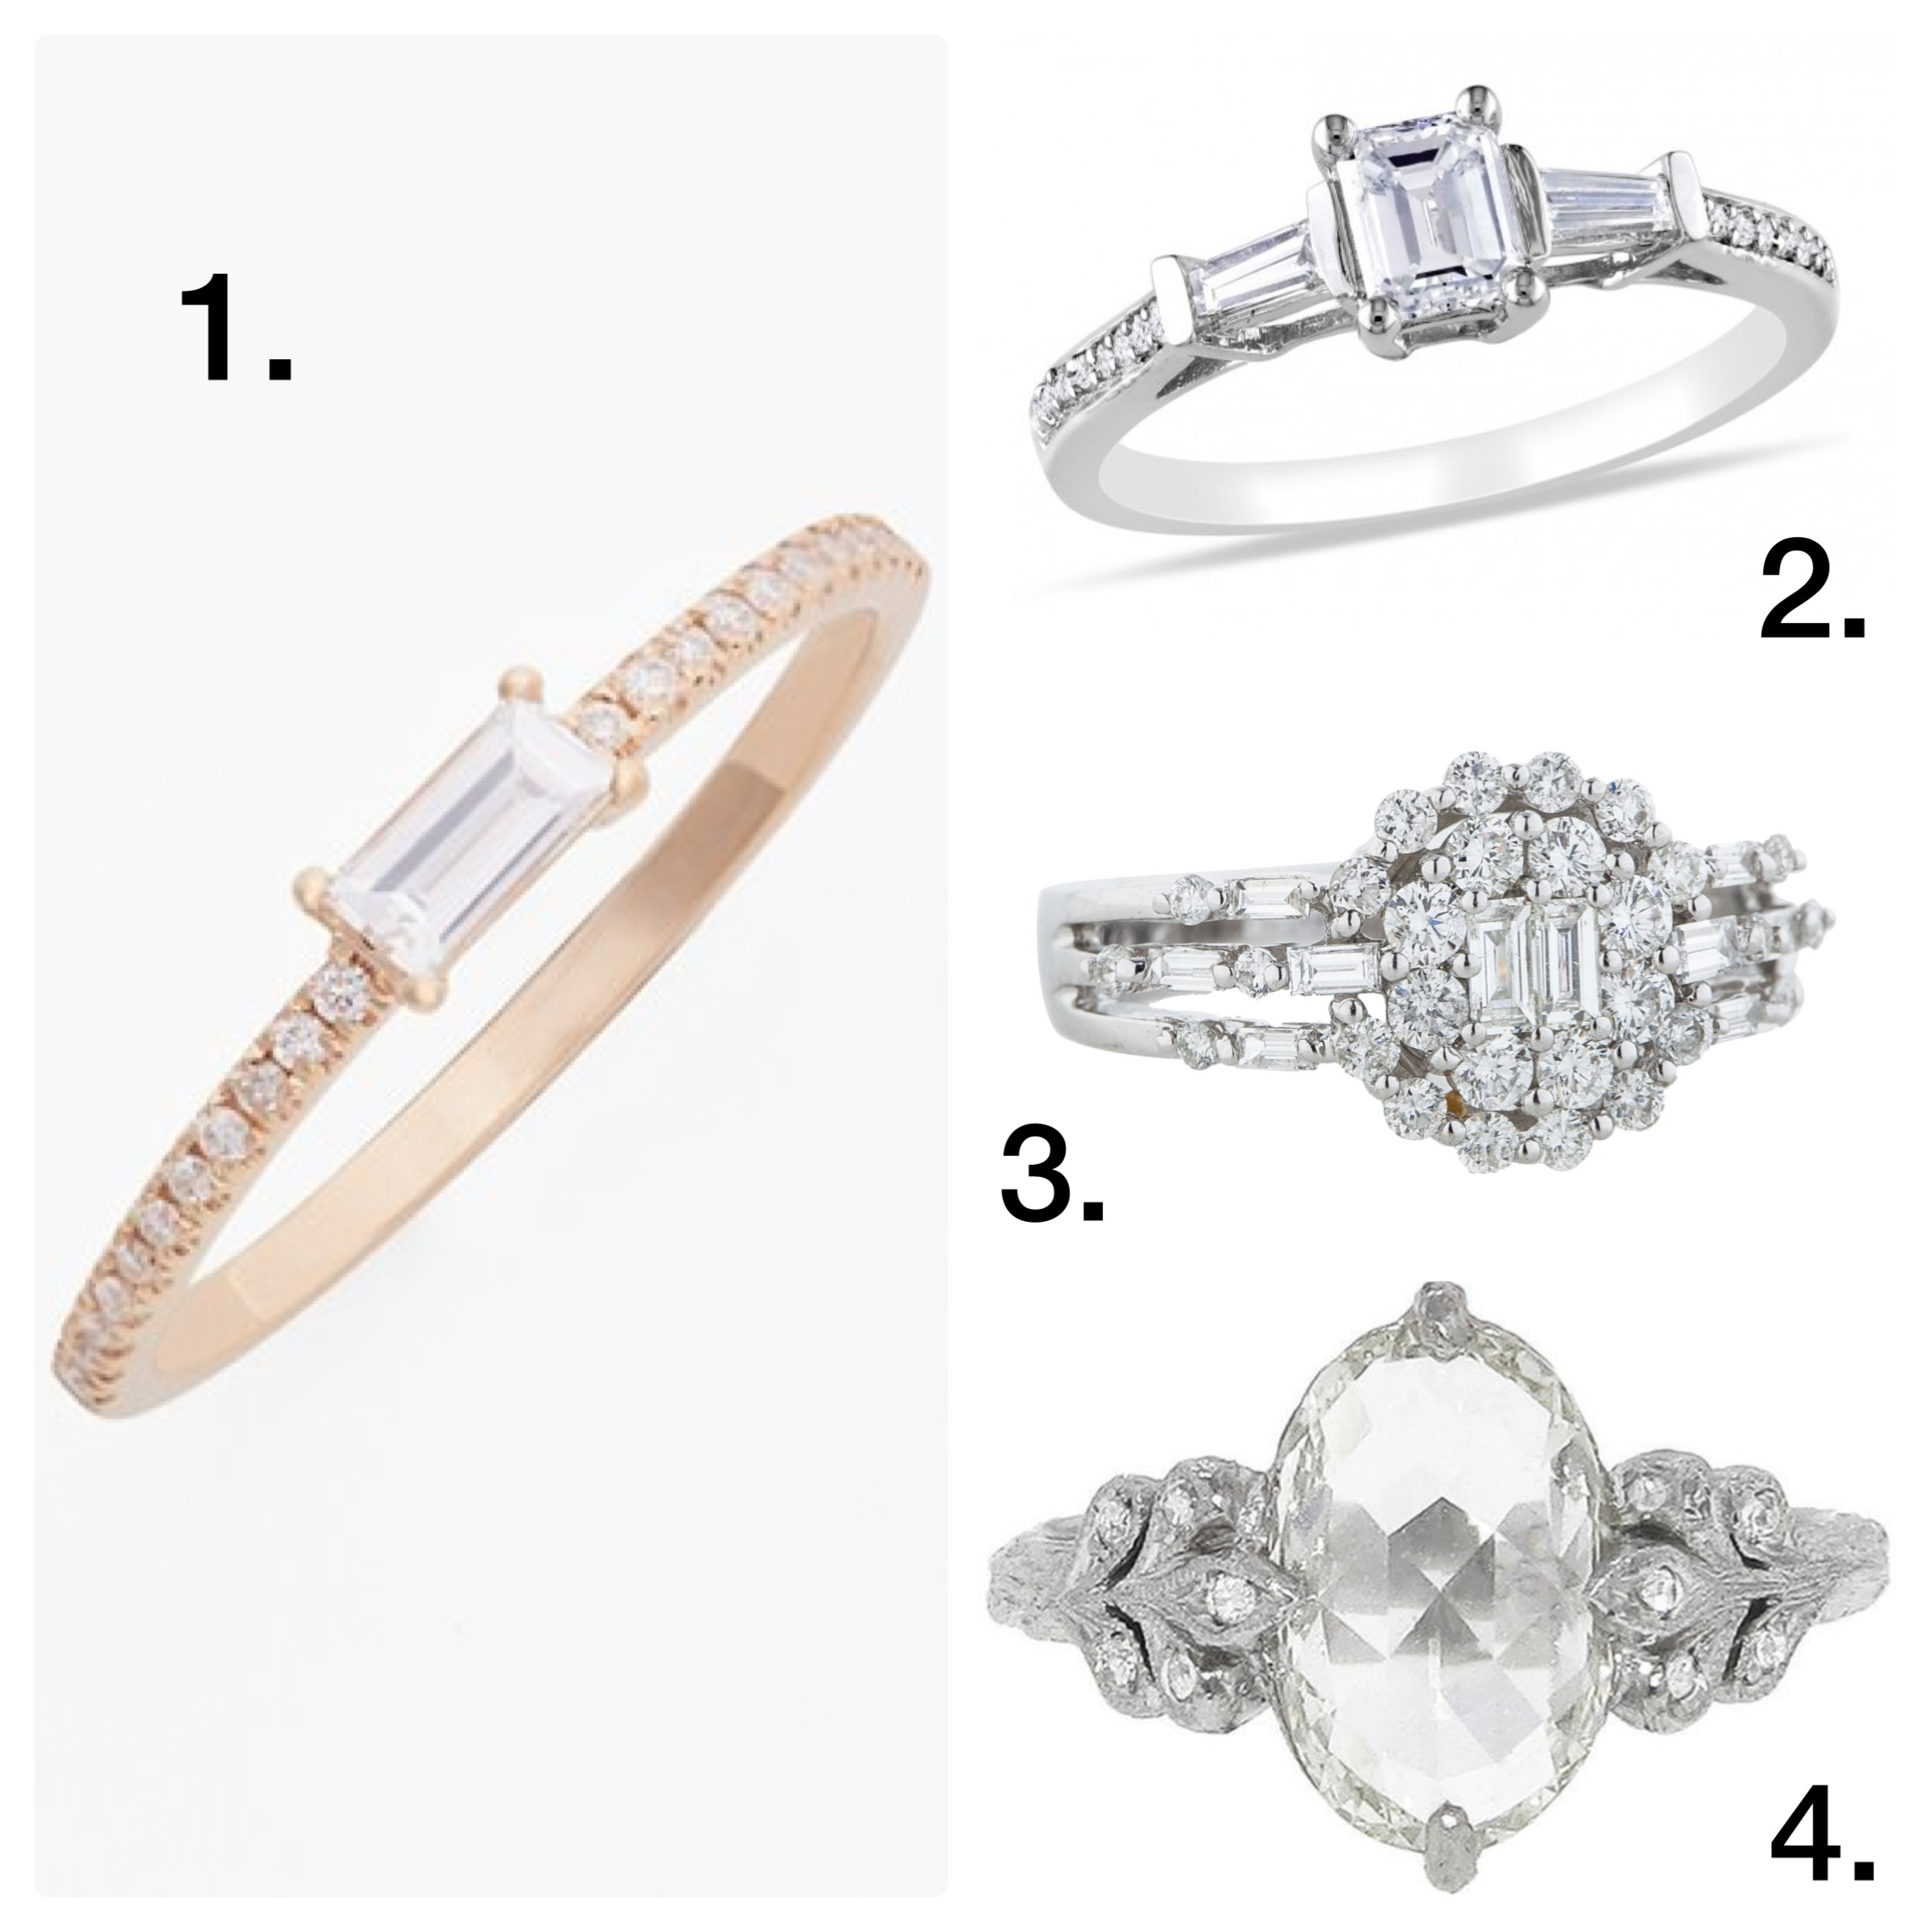 Weddings 10 Fairytale Inspired Unique Engagement Rings – Project